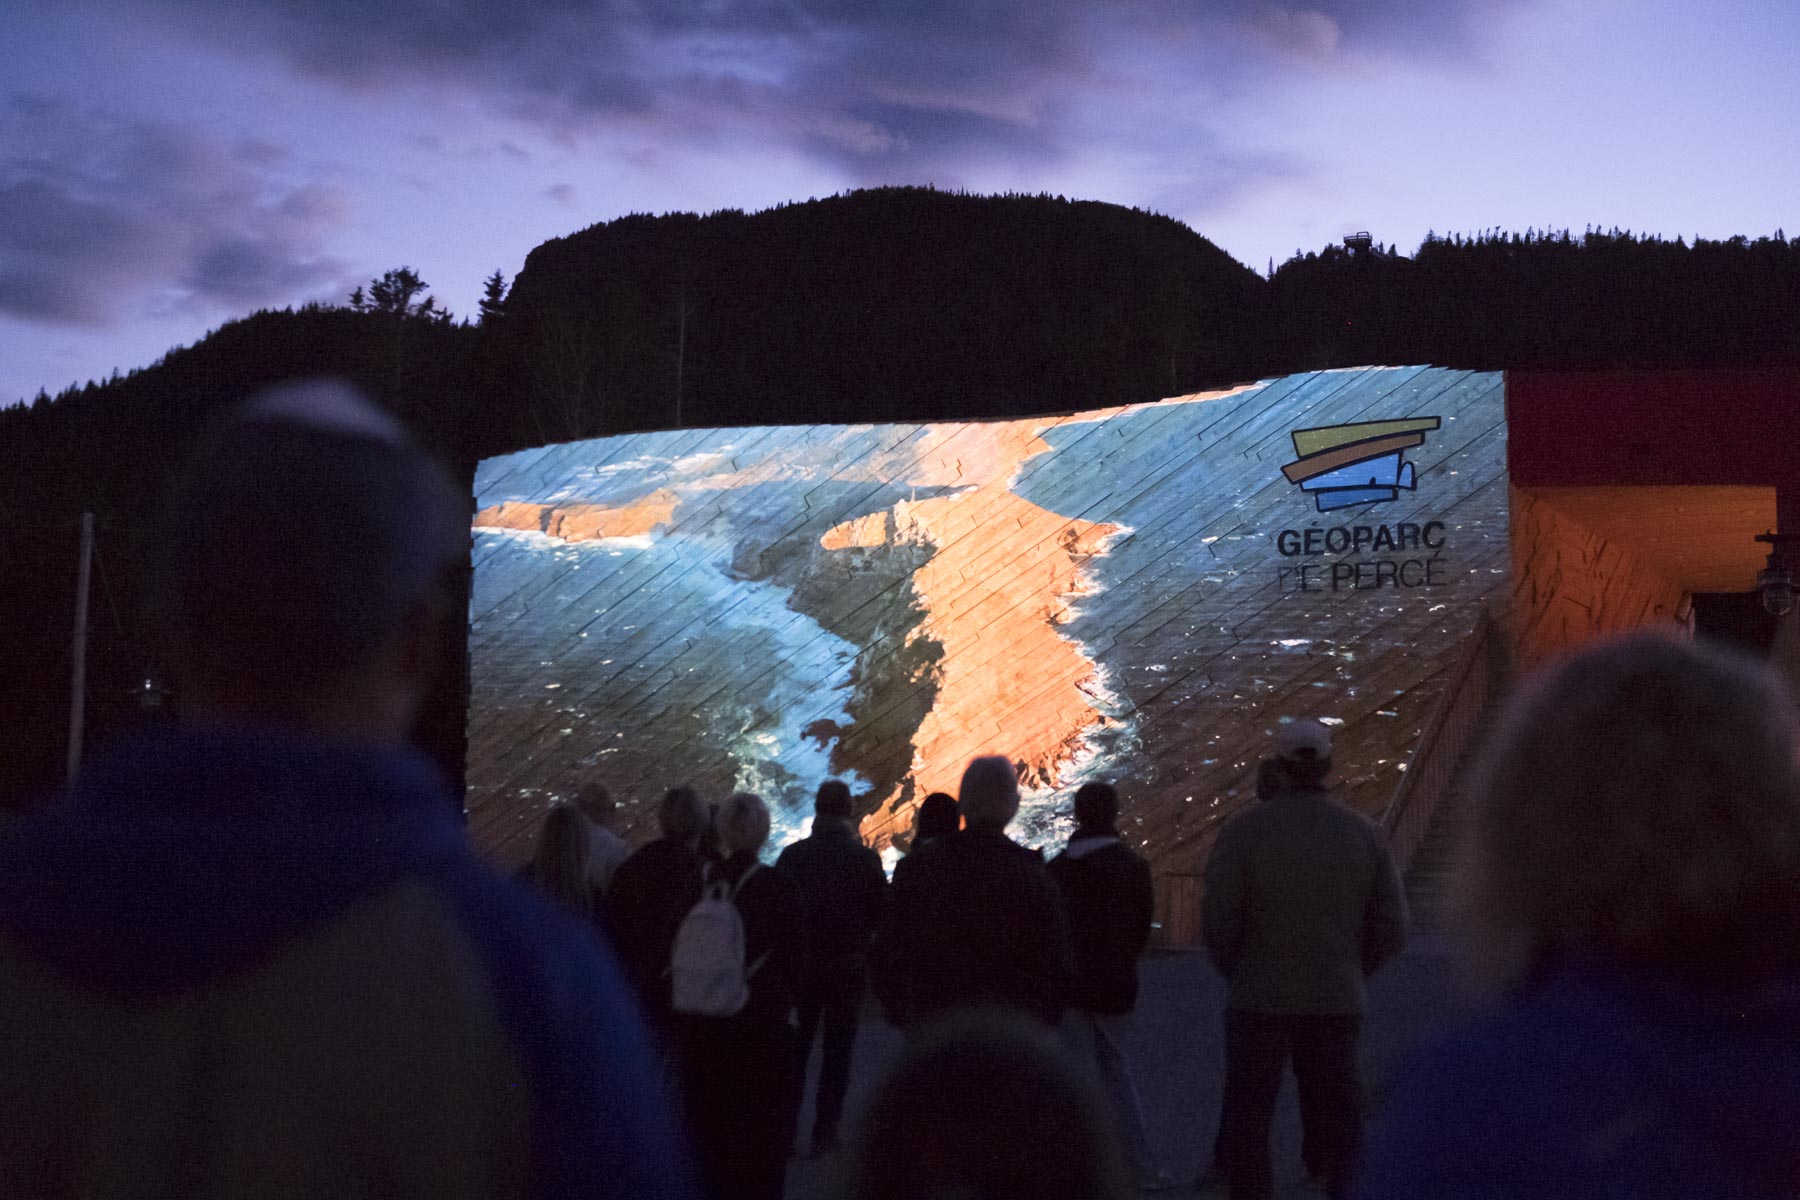 In the evening, Her Excellency participated in the kick-off of the first summer night hike of Percé Geopark. The film « The Legend of the Creation of the Micmac People » was projected on the facade of the Tektonik pavilion of the Geopark just before the walk.